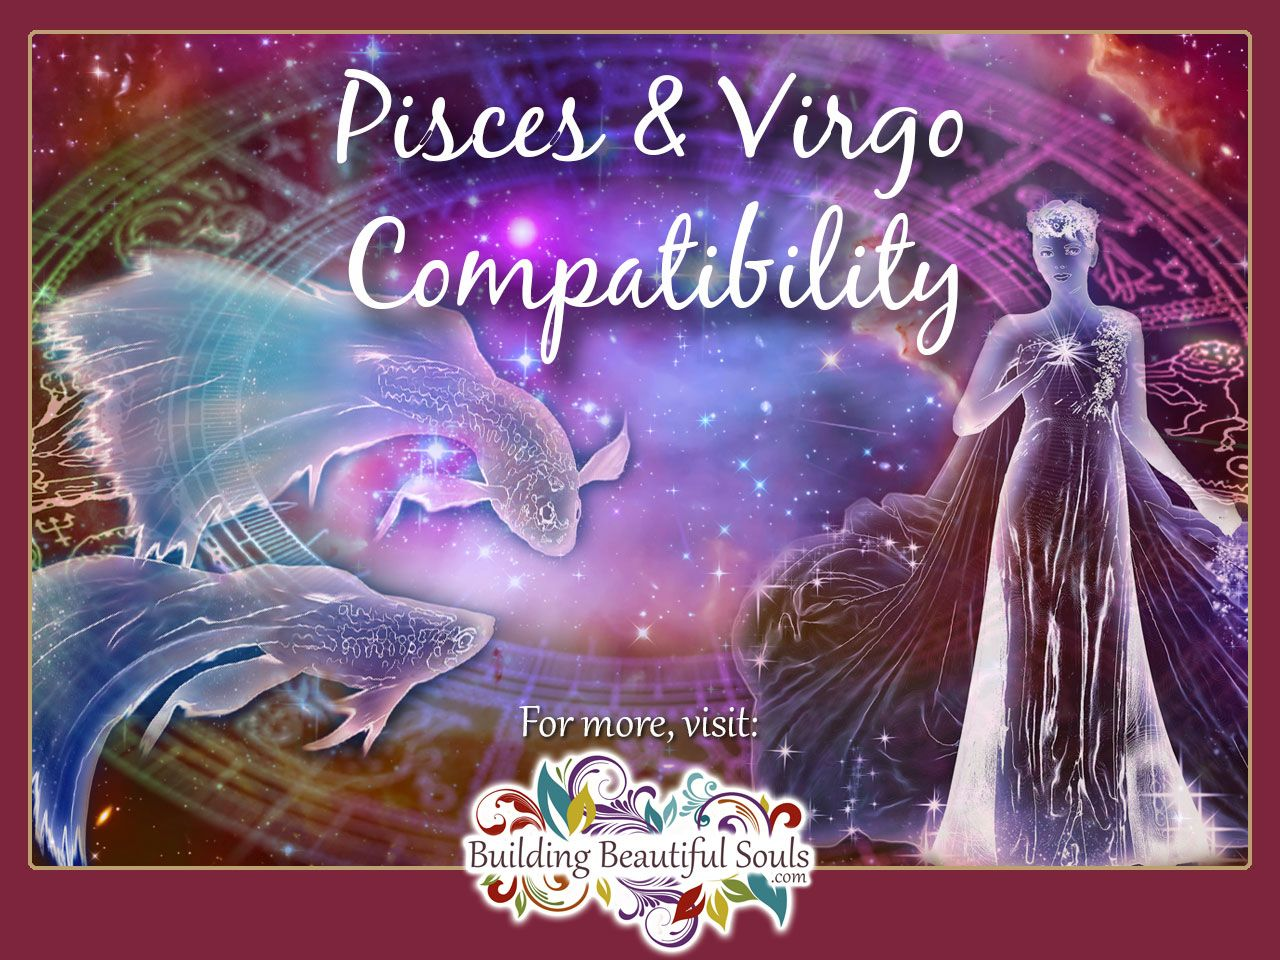 Are virgo and pisces sexually compatible